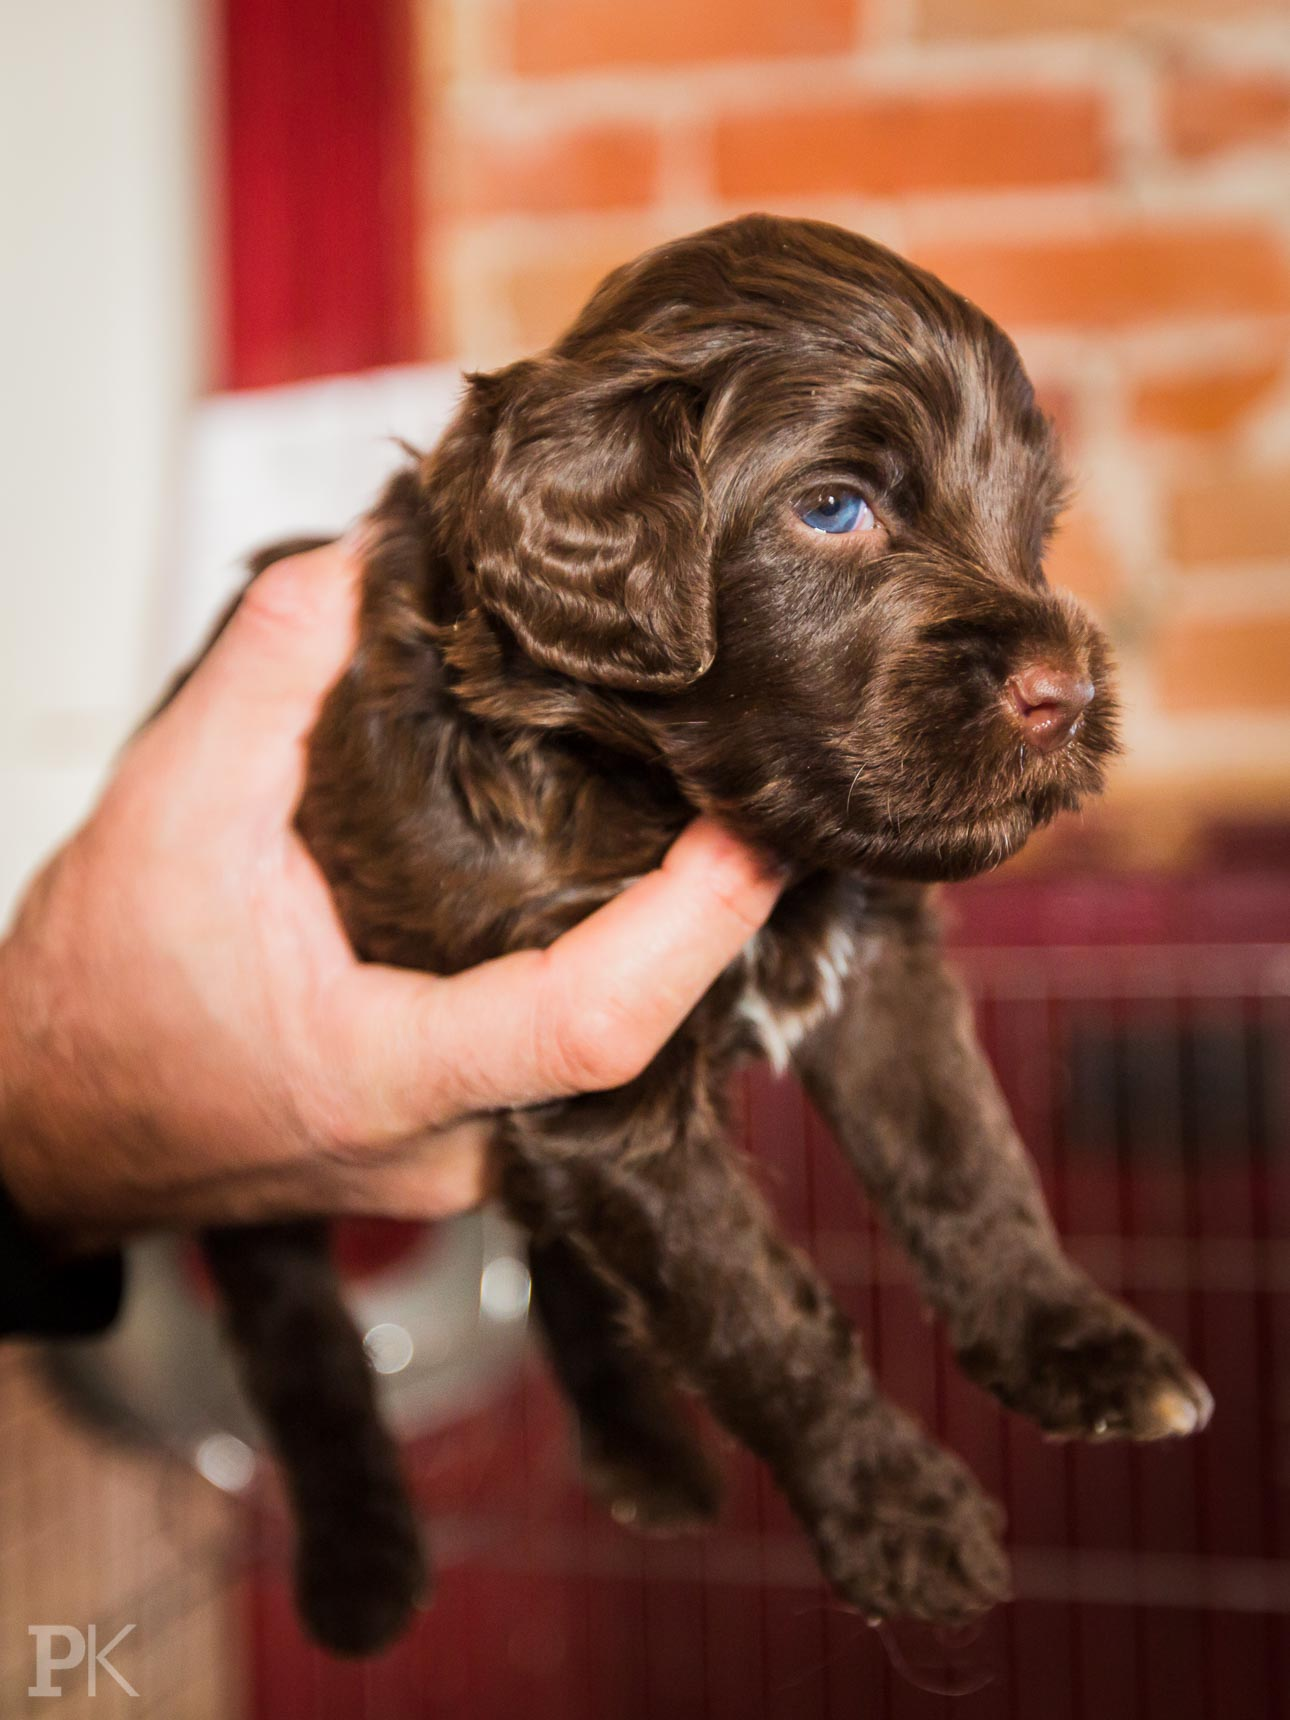 Our Future Brown Portuguese Water Dog Puppy